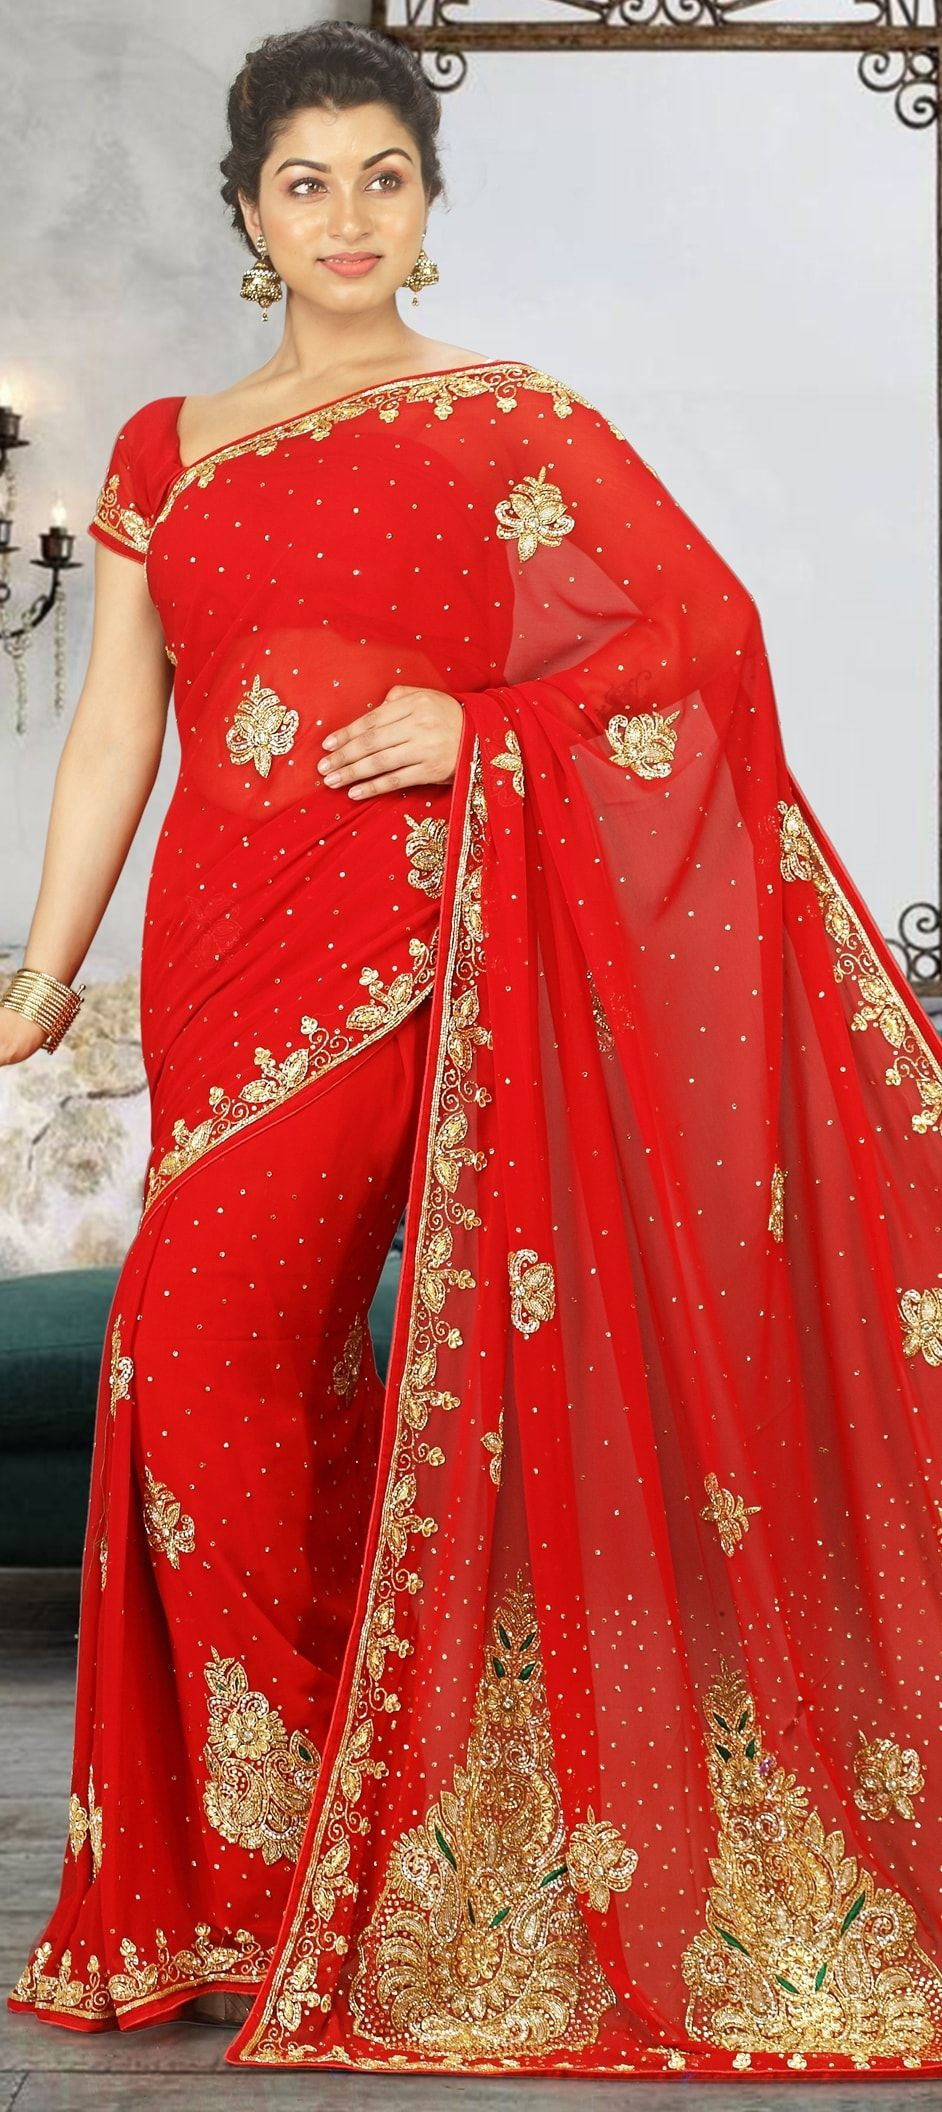 981c146c3c3 773255  Red and Maroon color family Bridal Wedding Sarees with ...